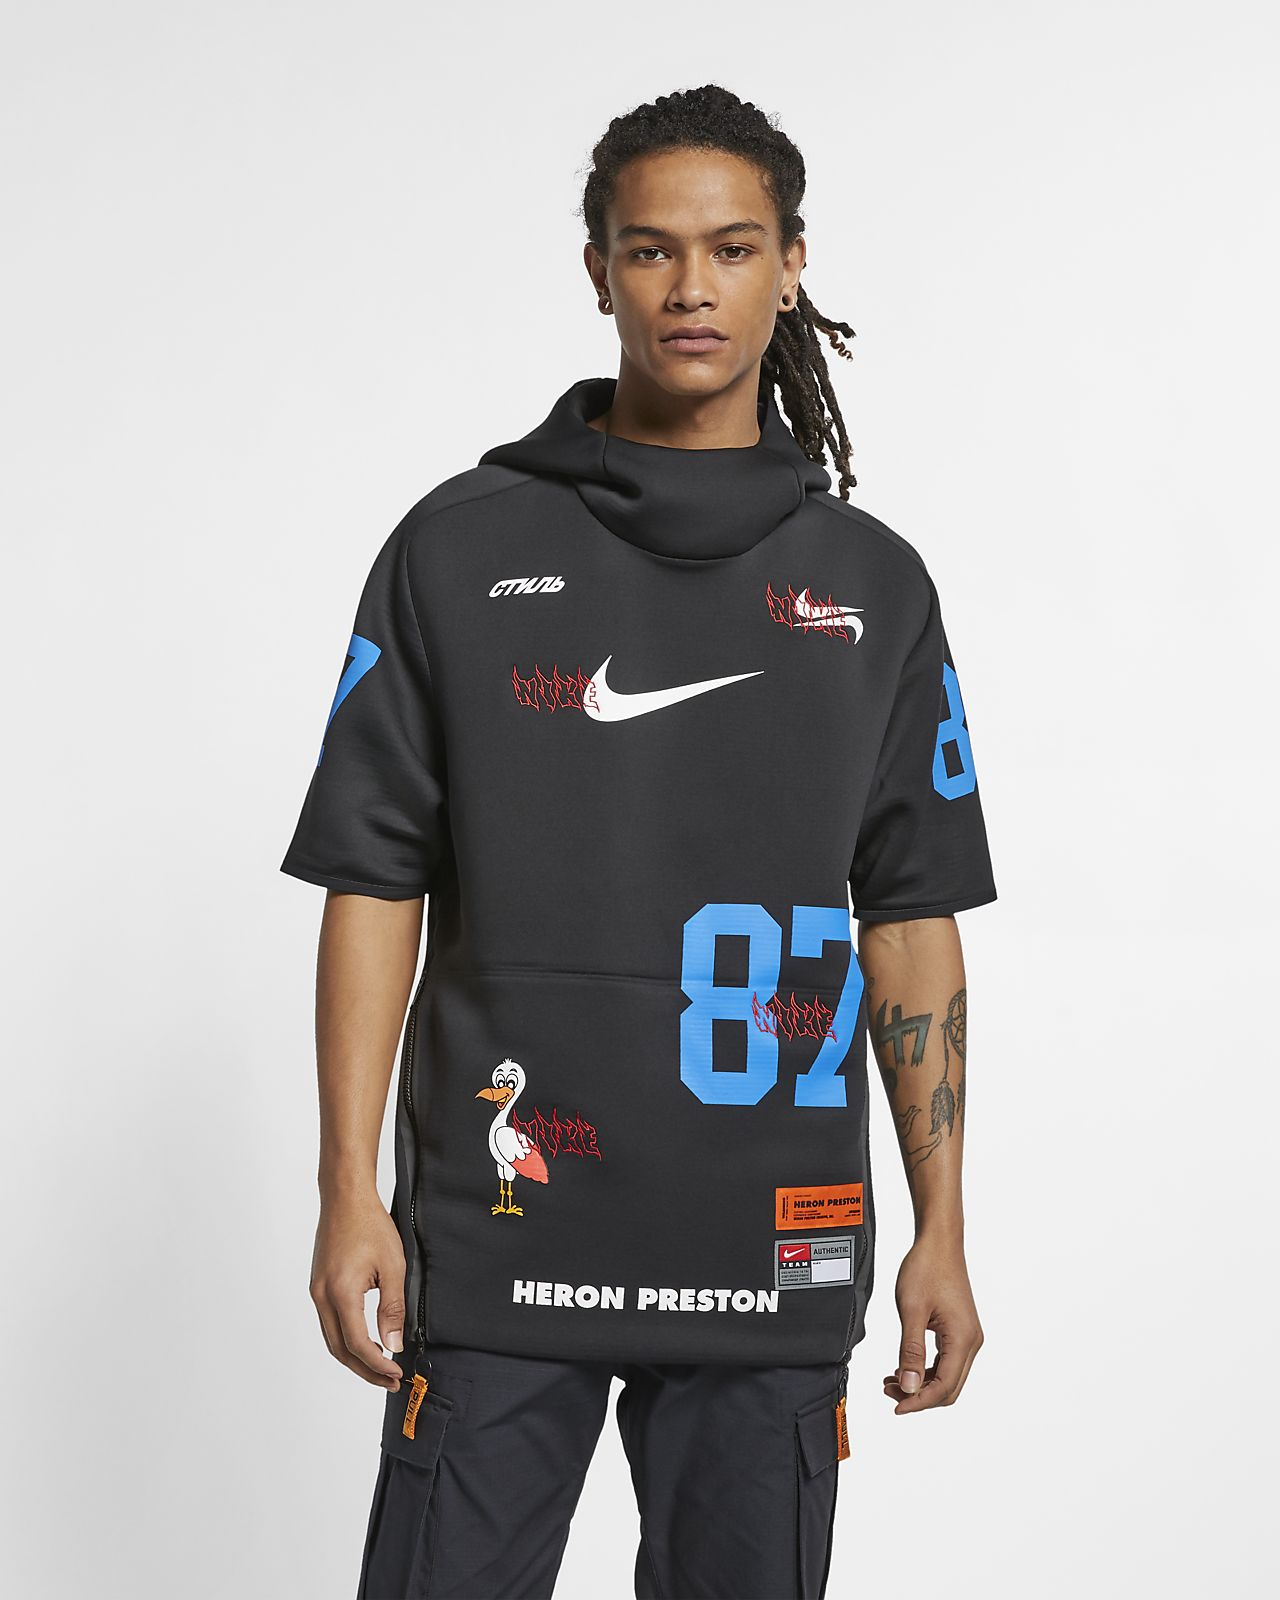 Nike x Heron Preston Men's Short-Sleeve Top